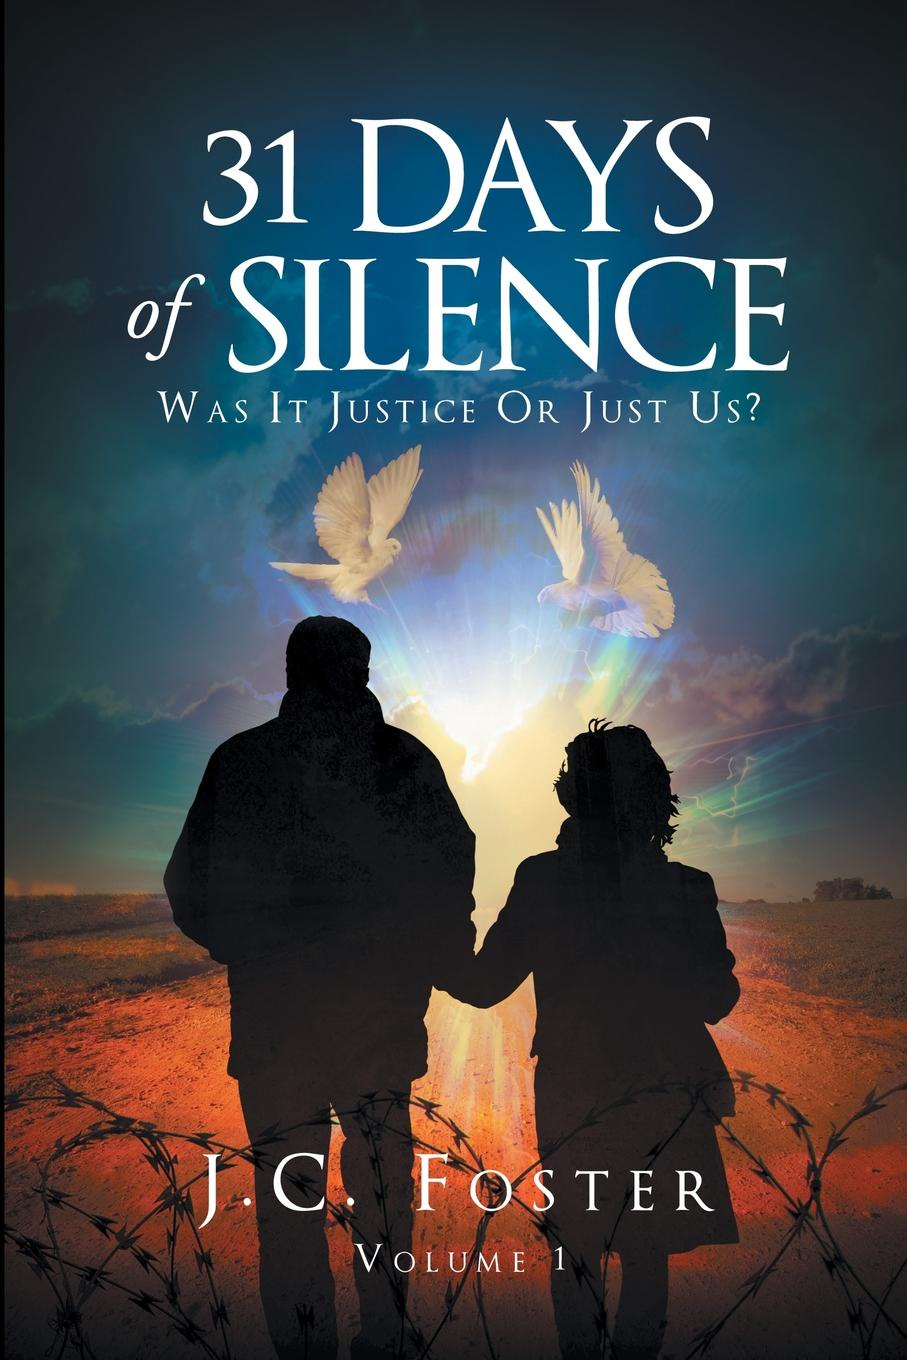 J.C. FOSTER 31 Days of Silence. Was It Justice or Just Us. gina wilkins faith hope and family